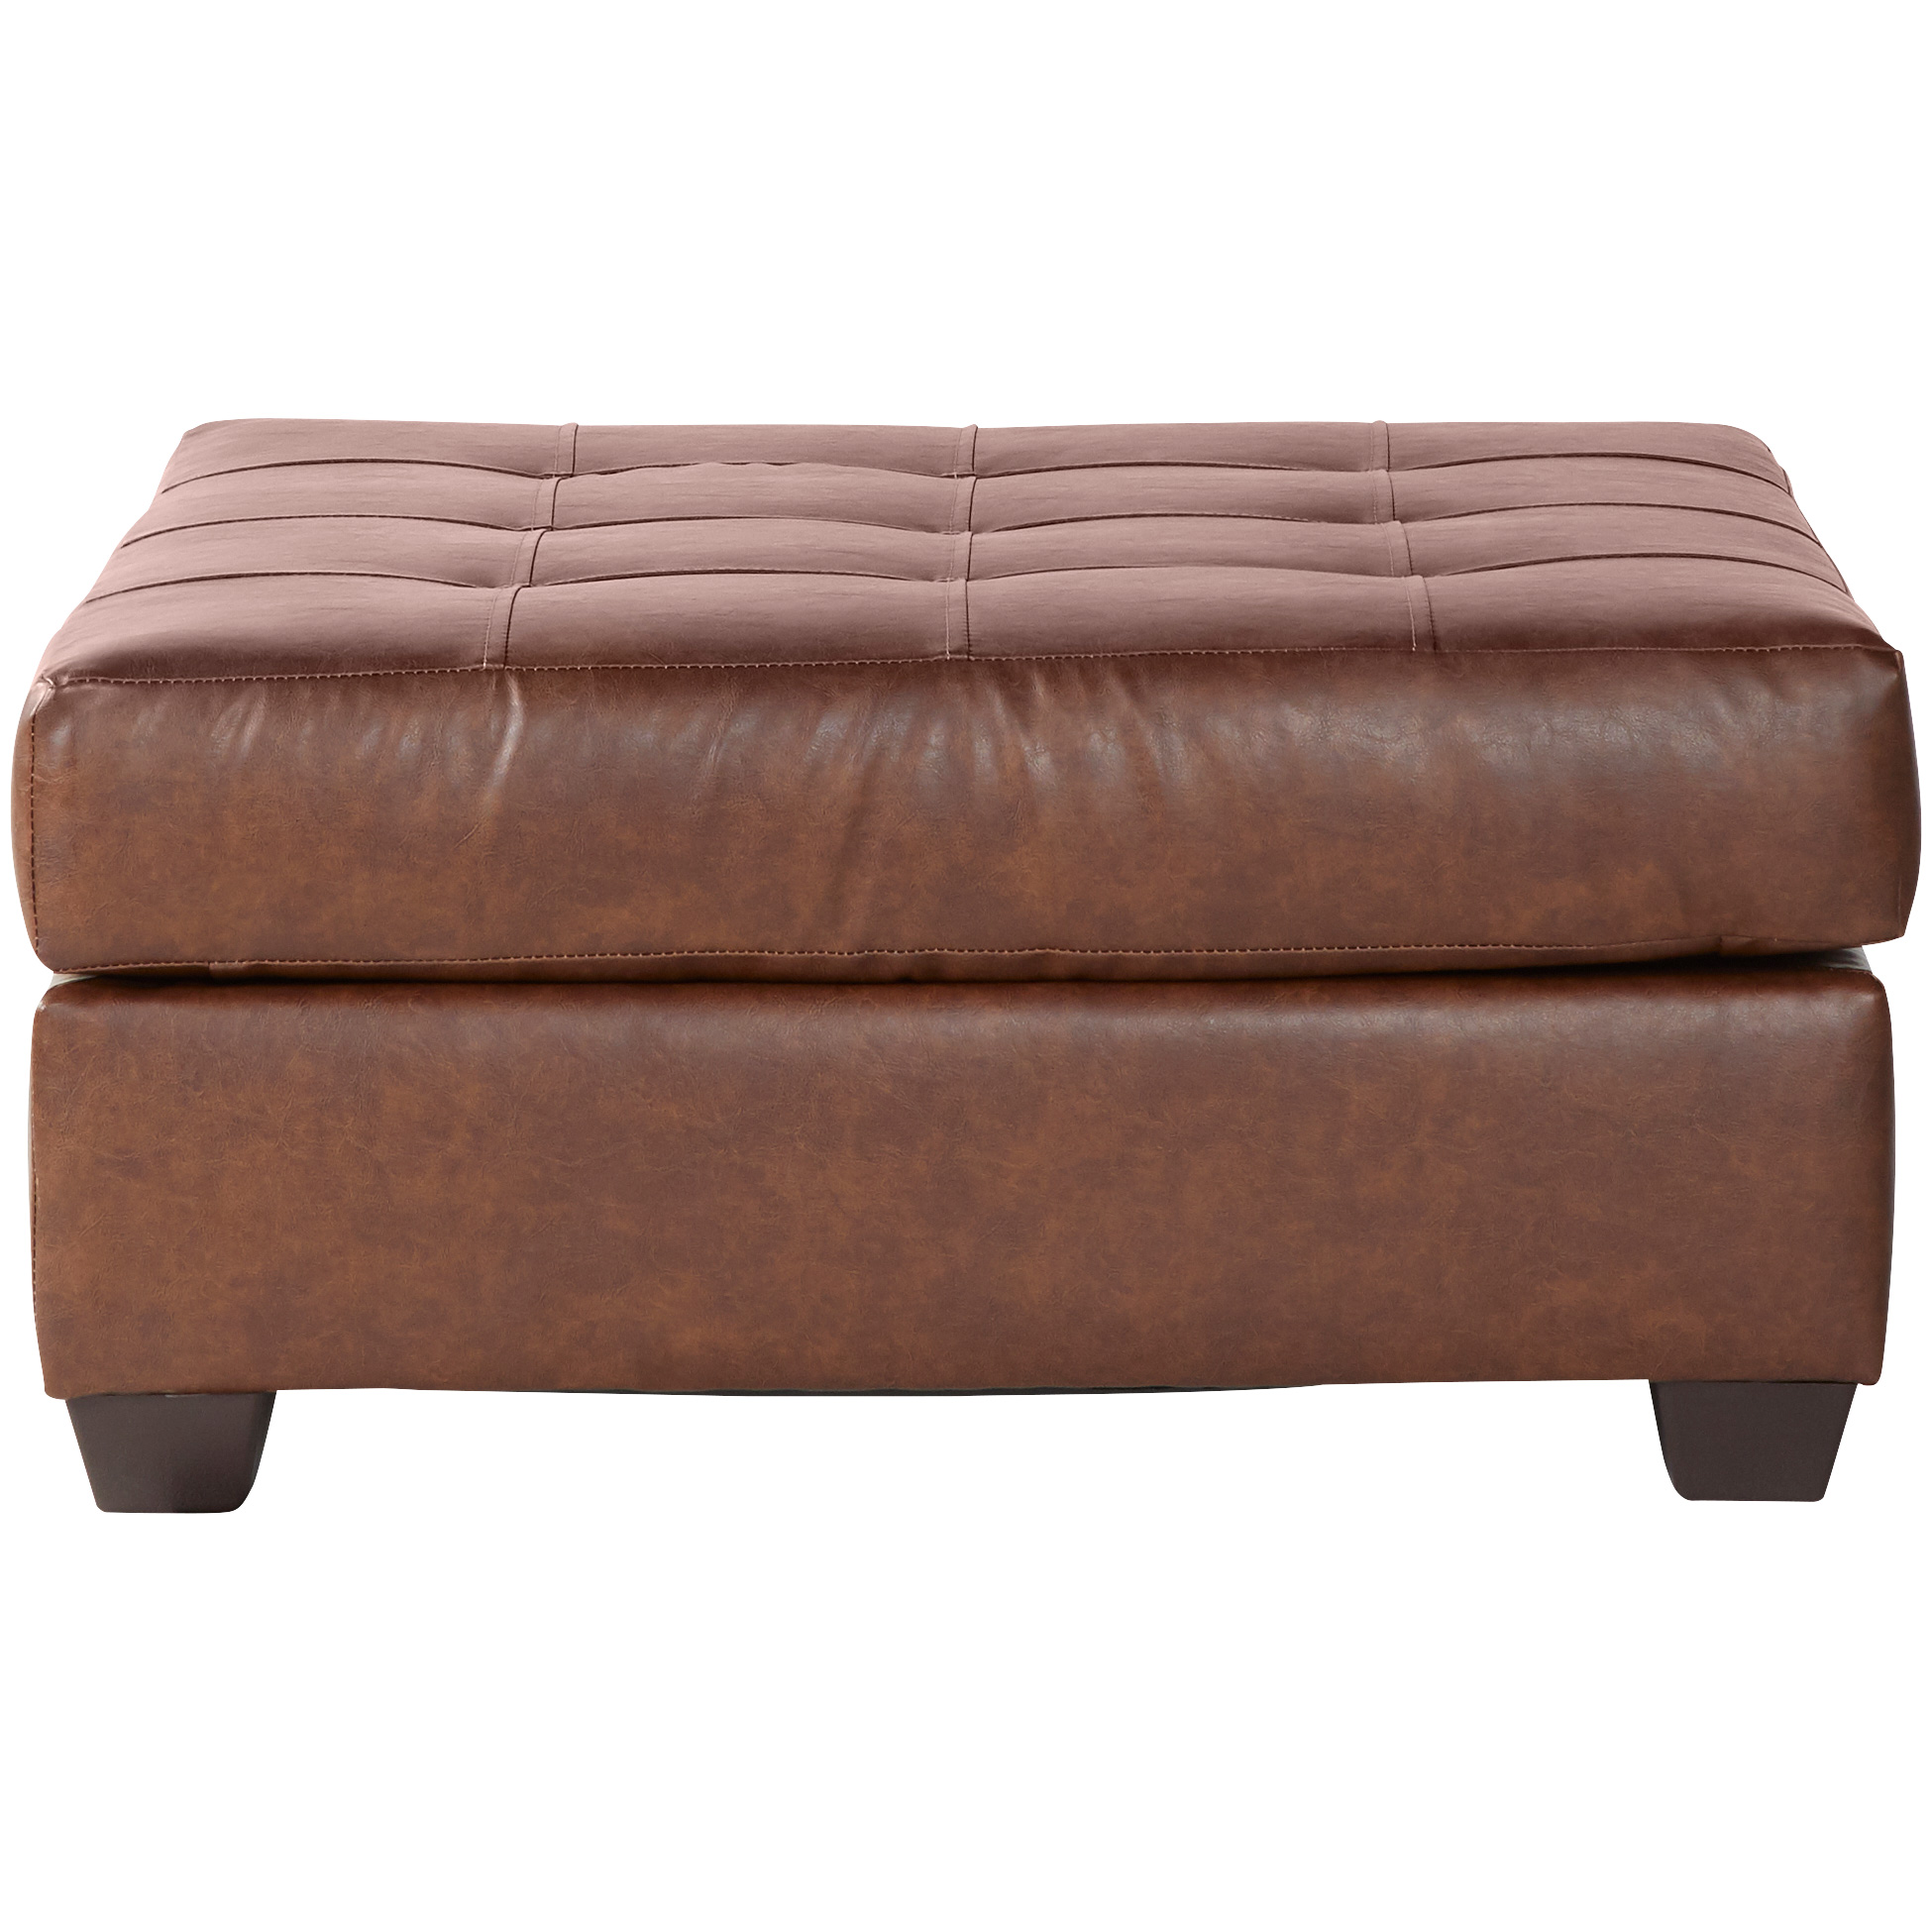 Serta Upholstery By Hughes Furniture | Bing Hazelnut Accent Ottoman